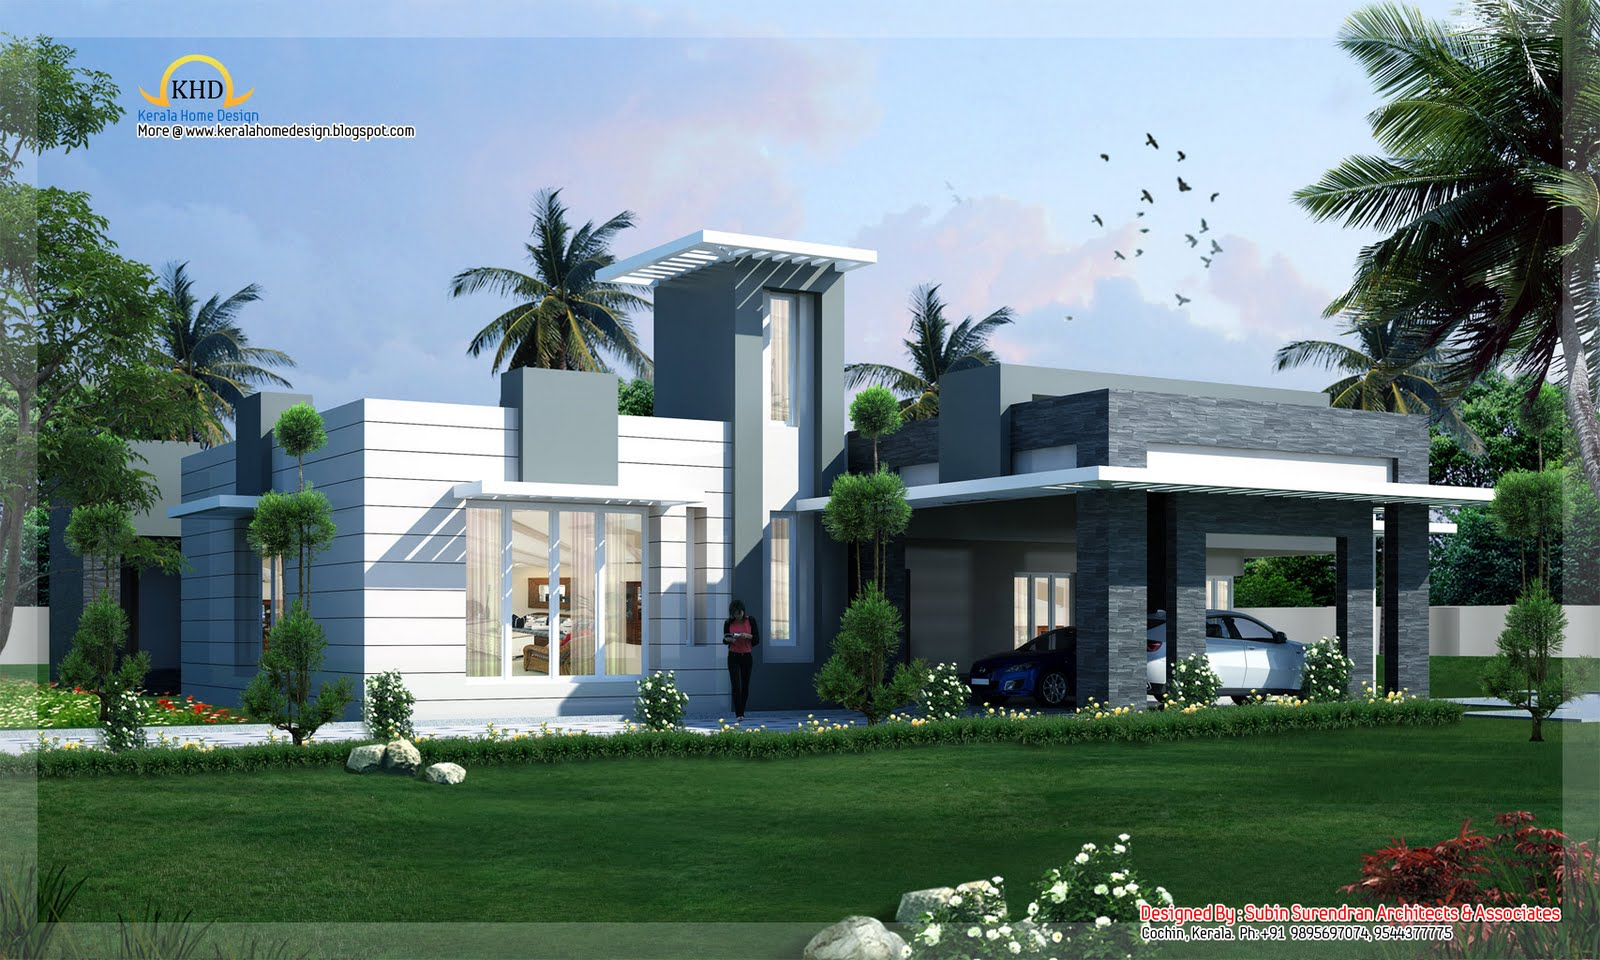 Contemporary home design  418 Sq M 4500 Sq. Ft  January 2012